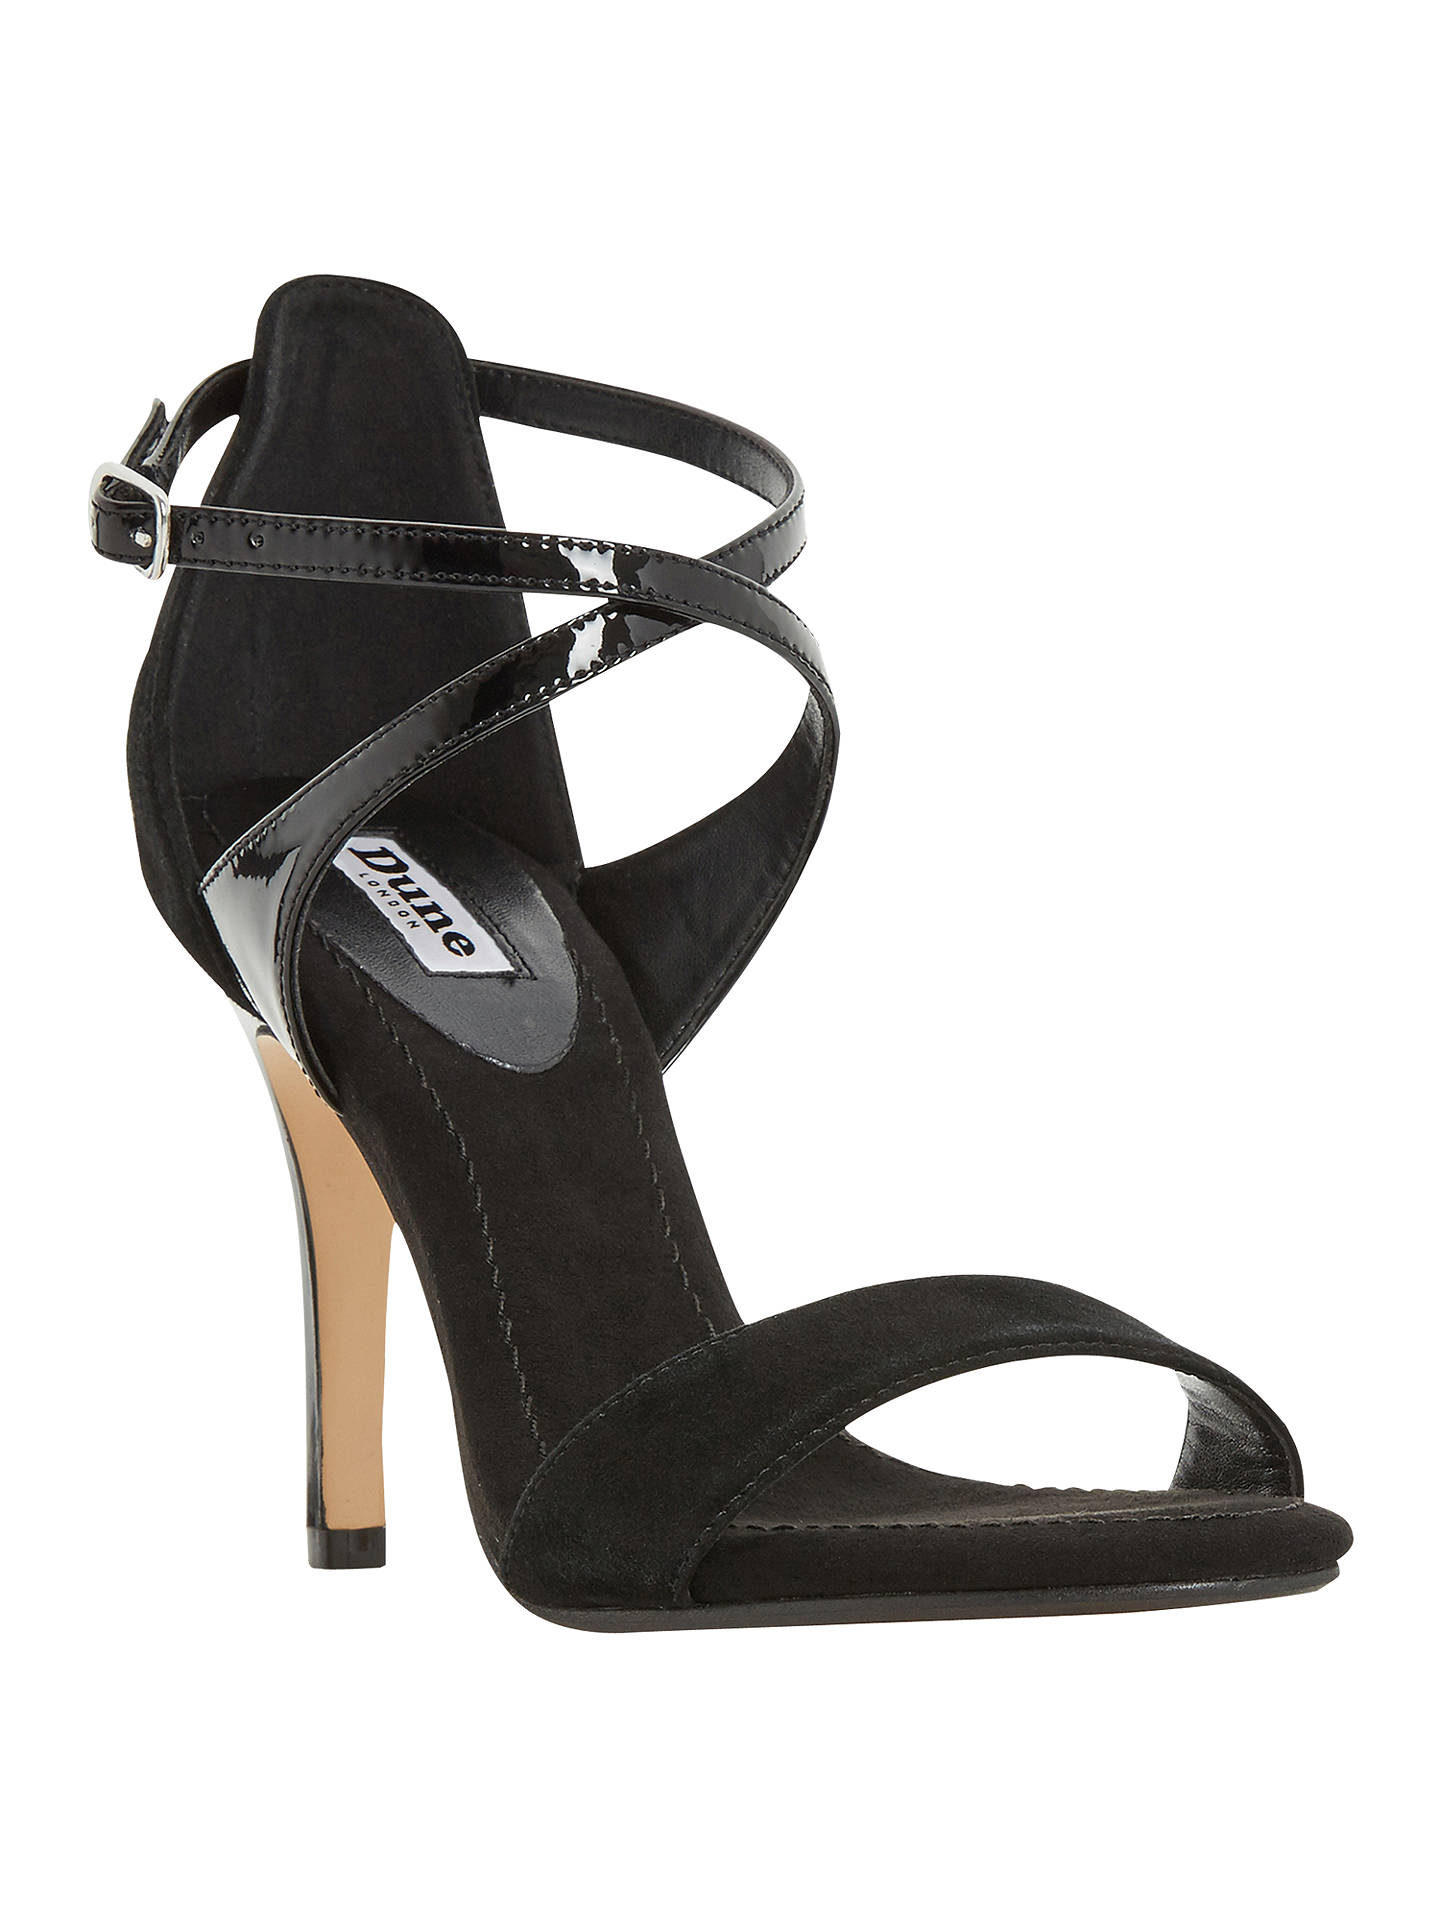 d394b3ee8 Dune Madeleine Strappy Cross Strap Heeled Sandals at John Lewis ...